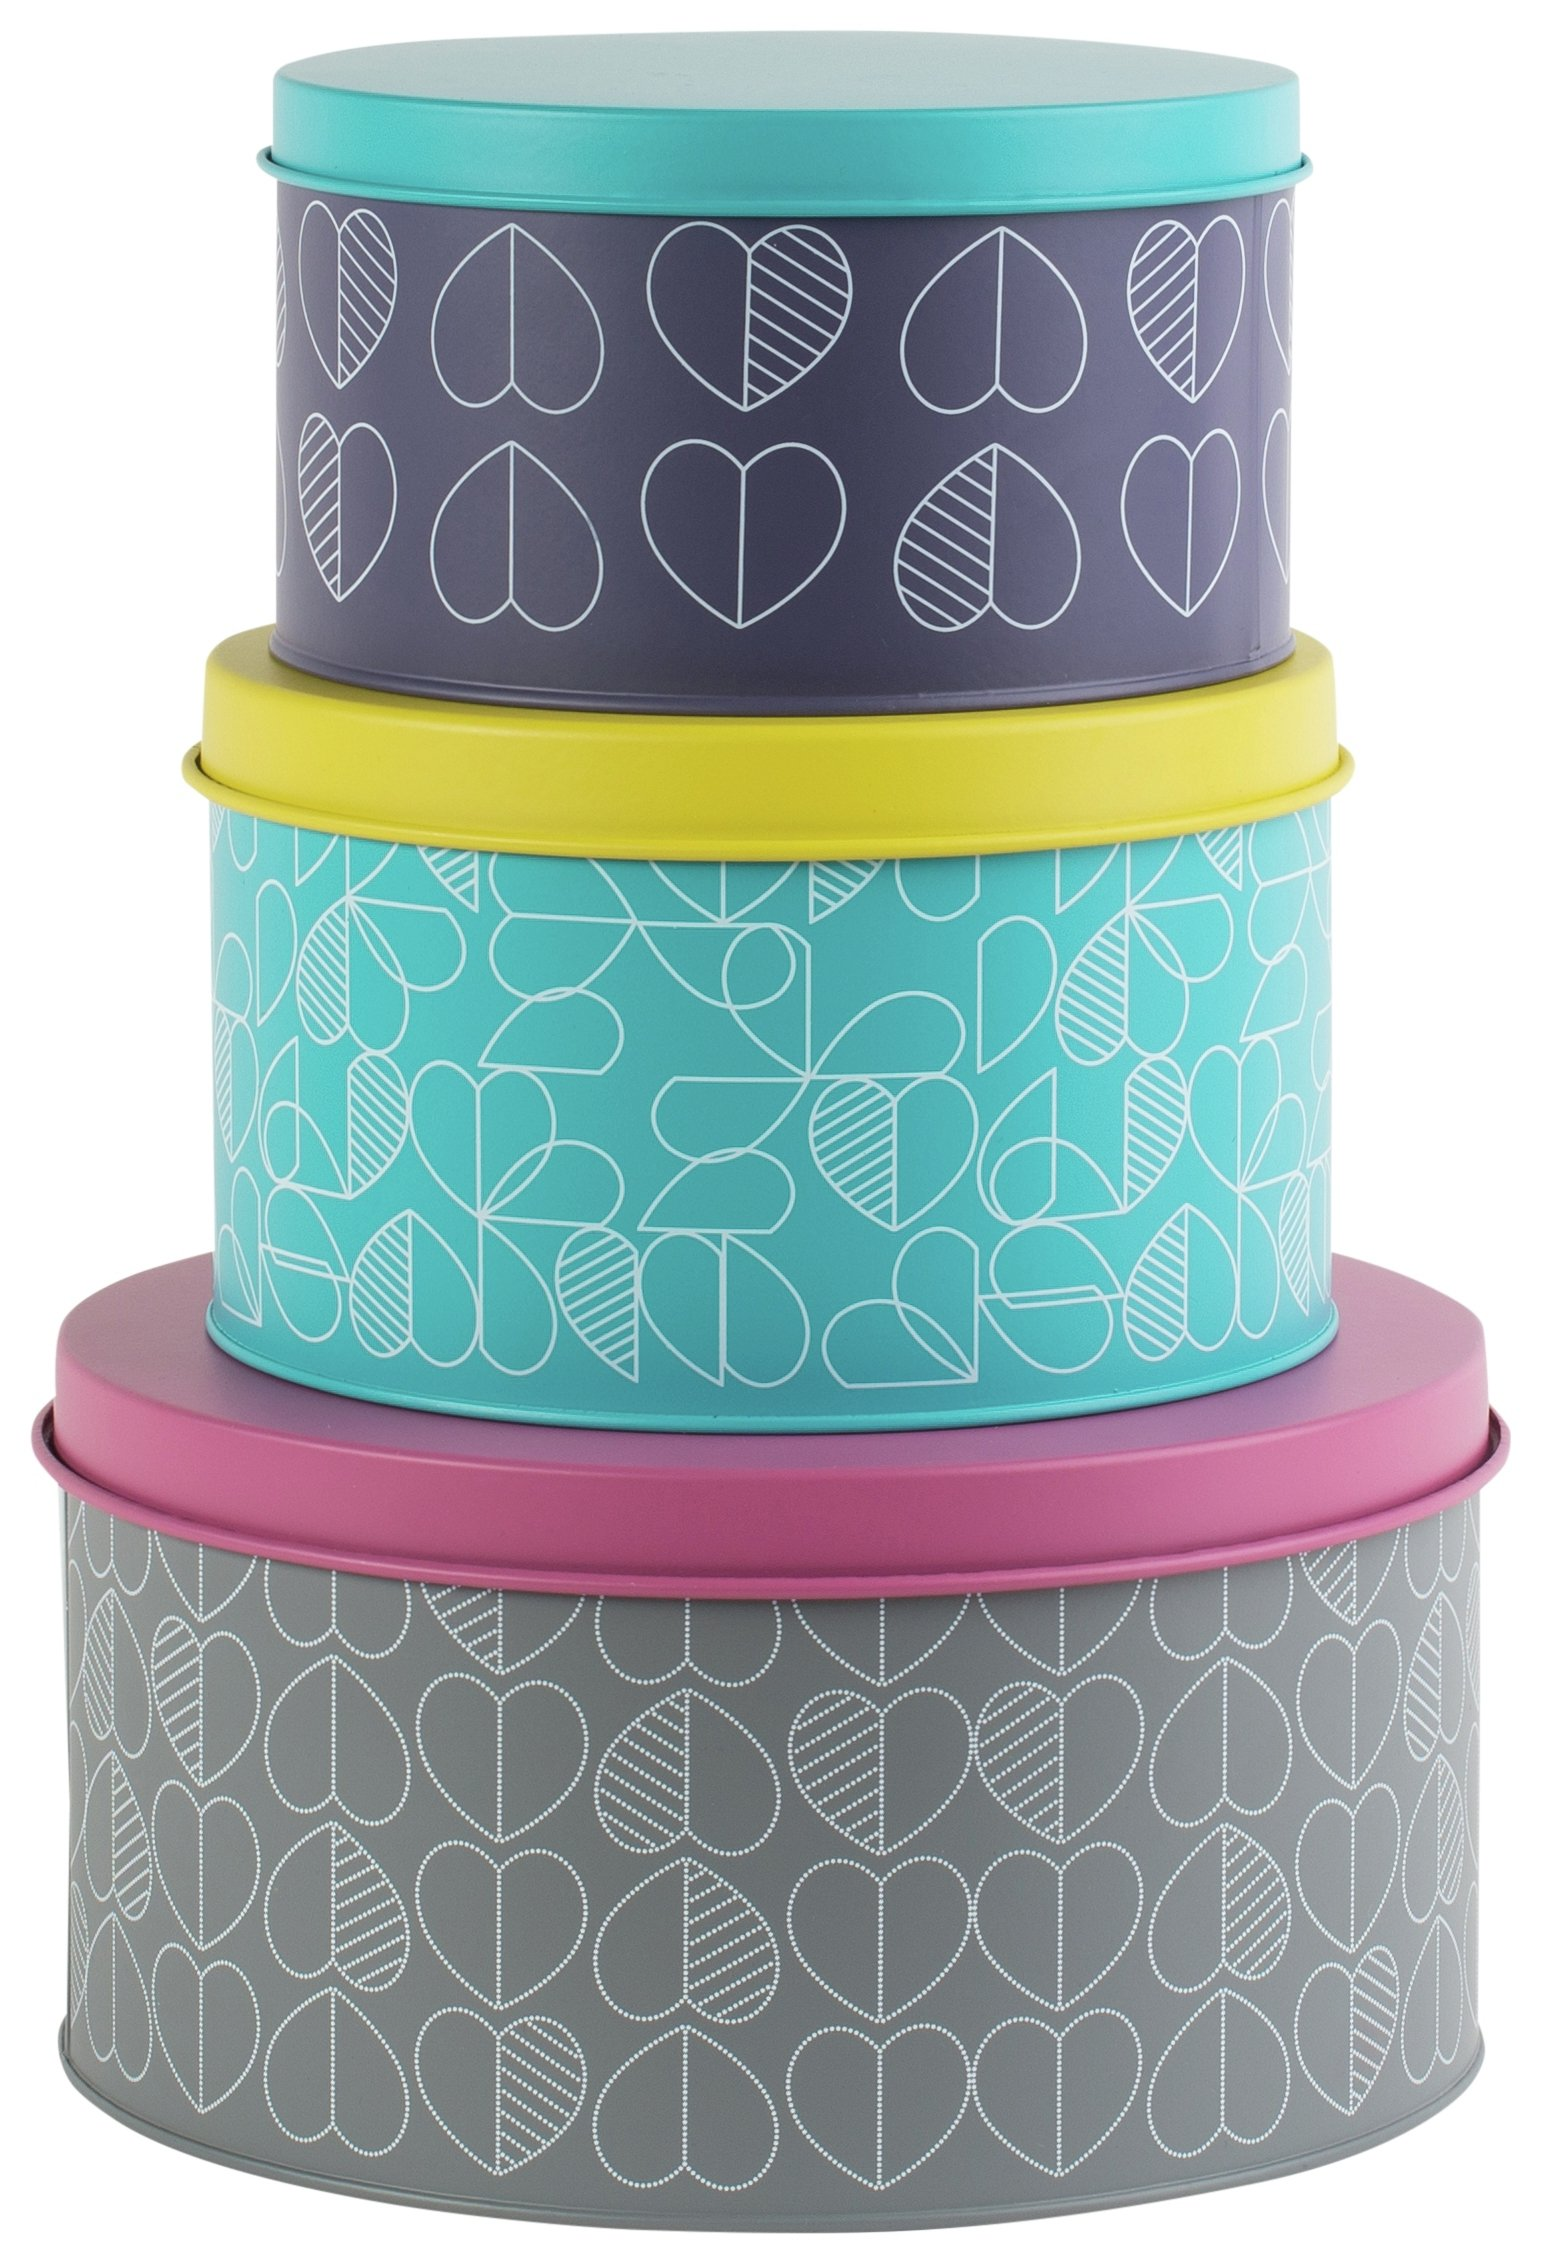 Image of Beau and Elliot Linear Set of 3 Nesting Storage Tins.